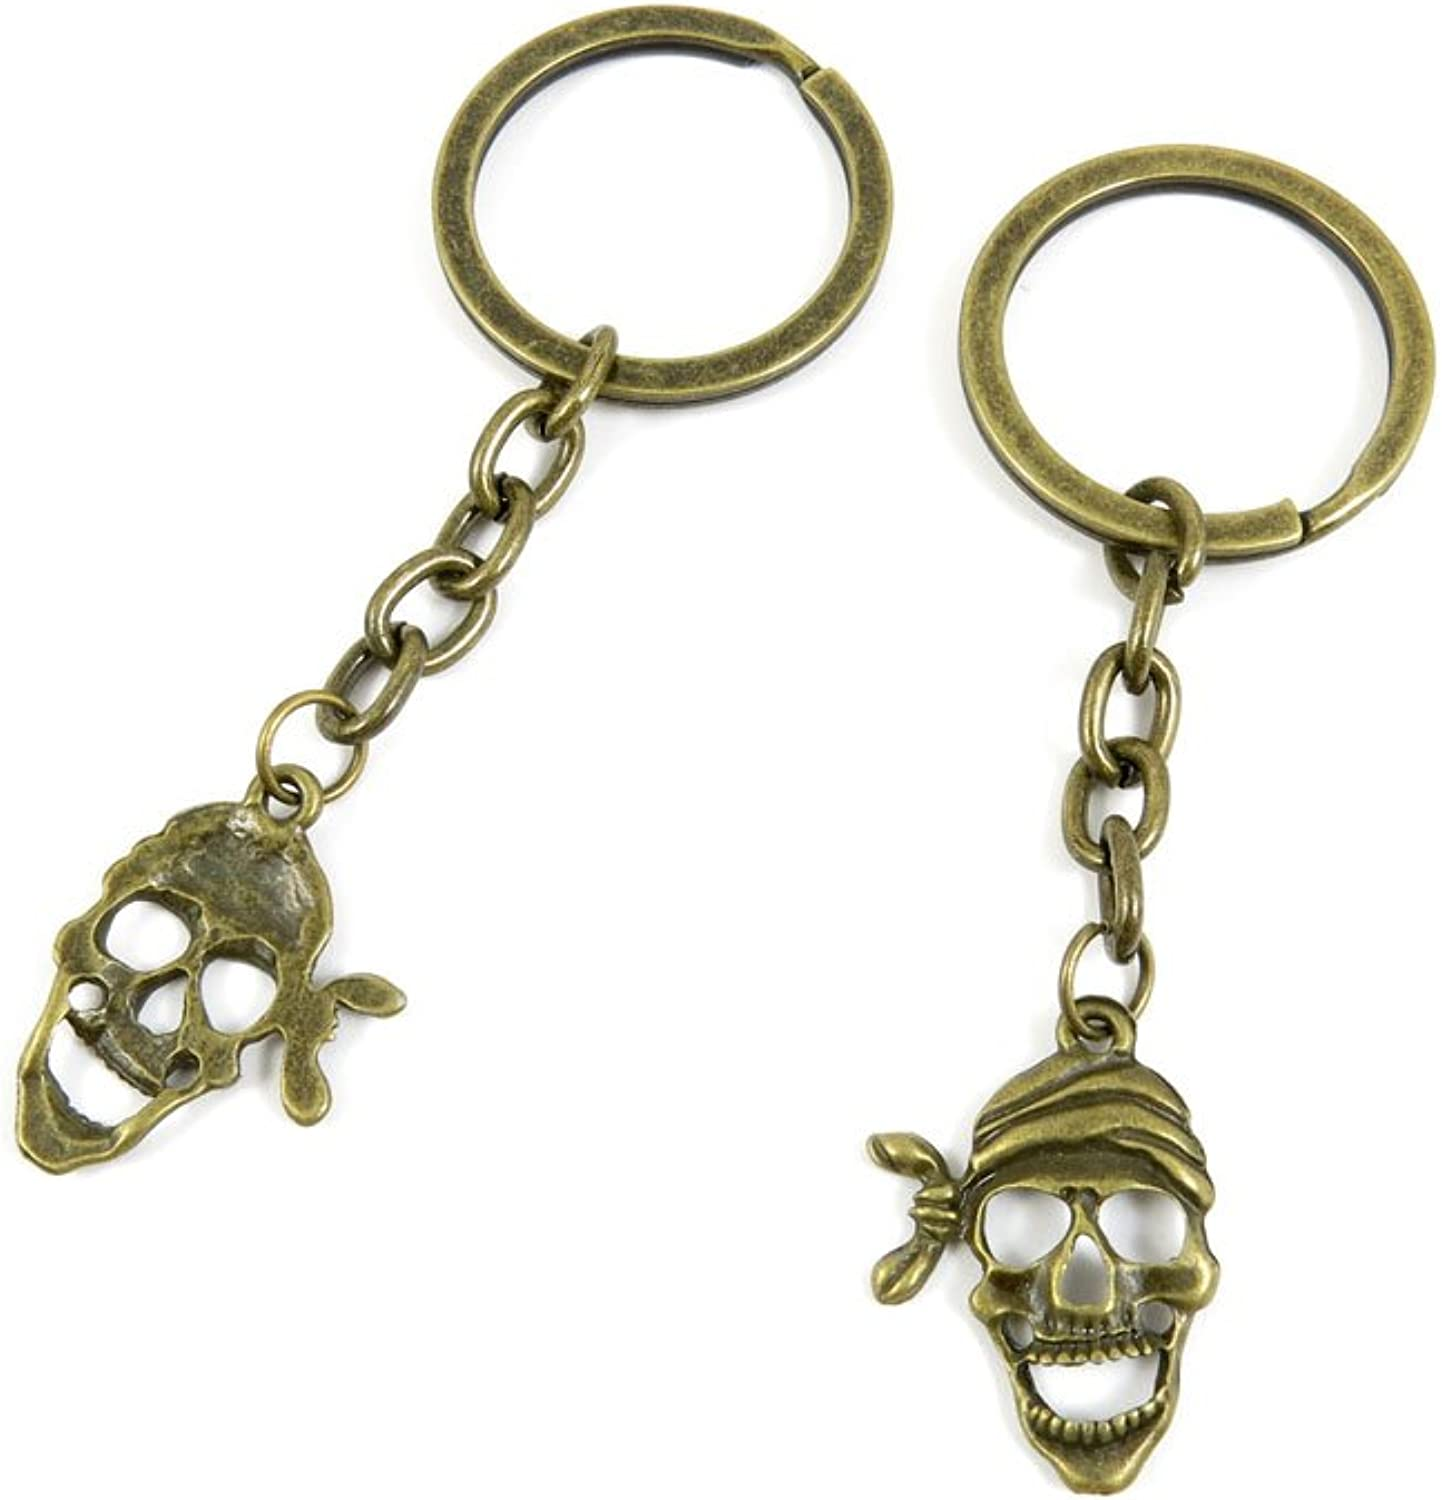 100 PCS Keyrings Keychains Key Ring Chains Tags Jewelry Findings Clasps Buckles Supplies O8PC7 Pirate Skull